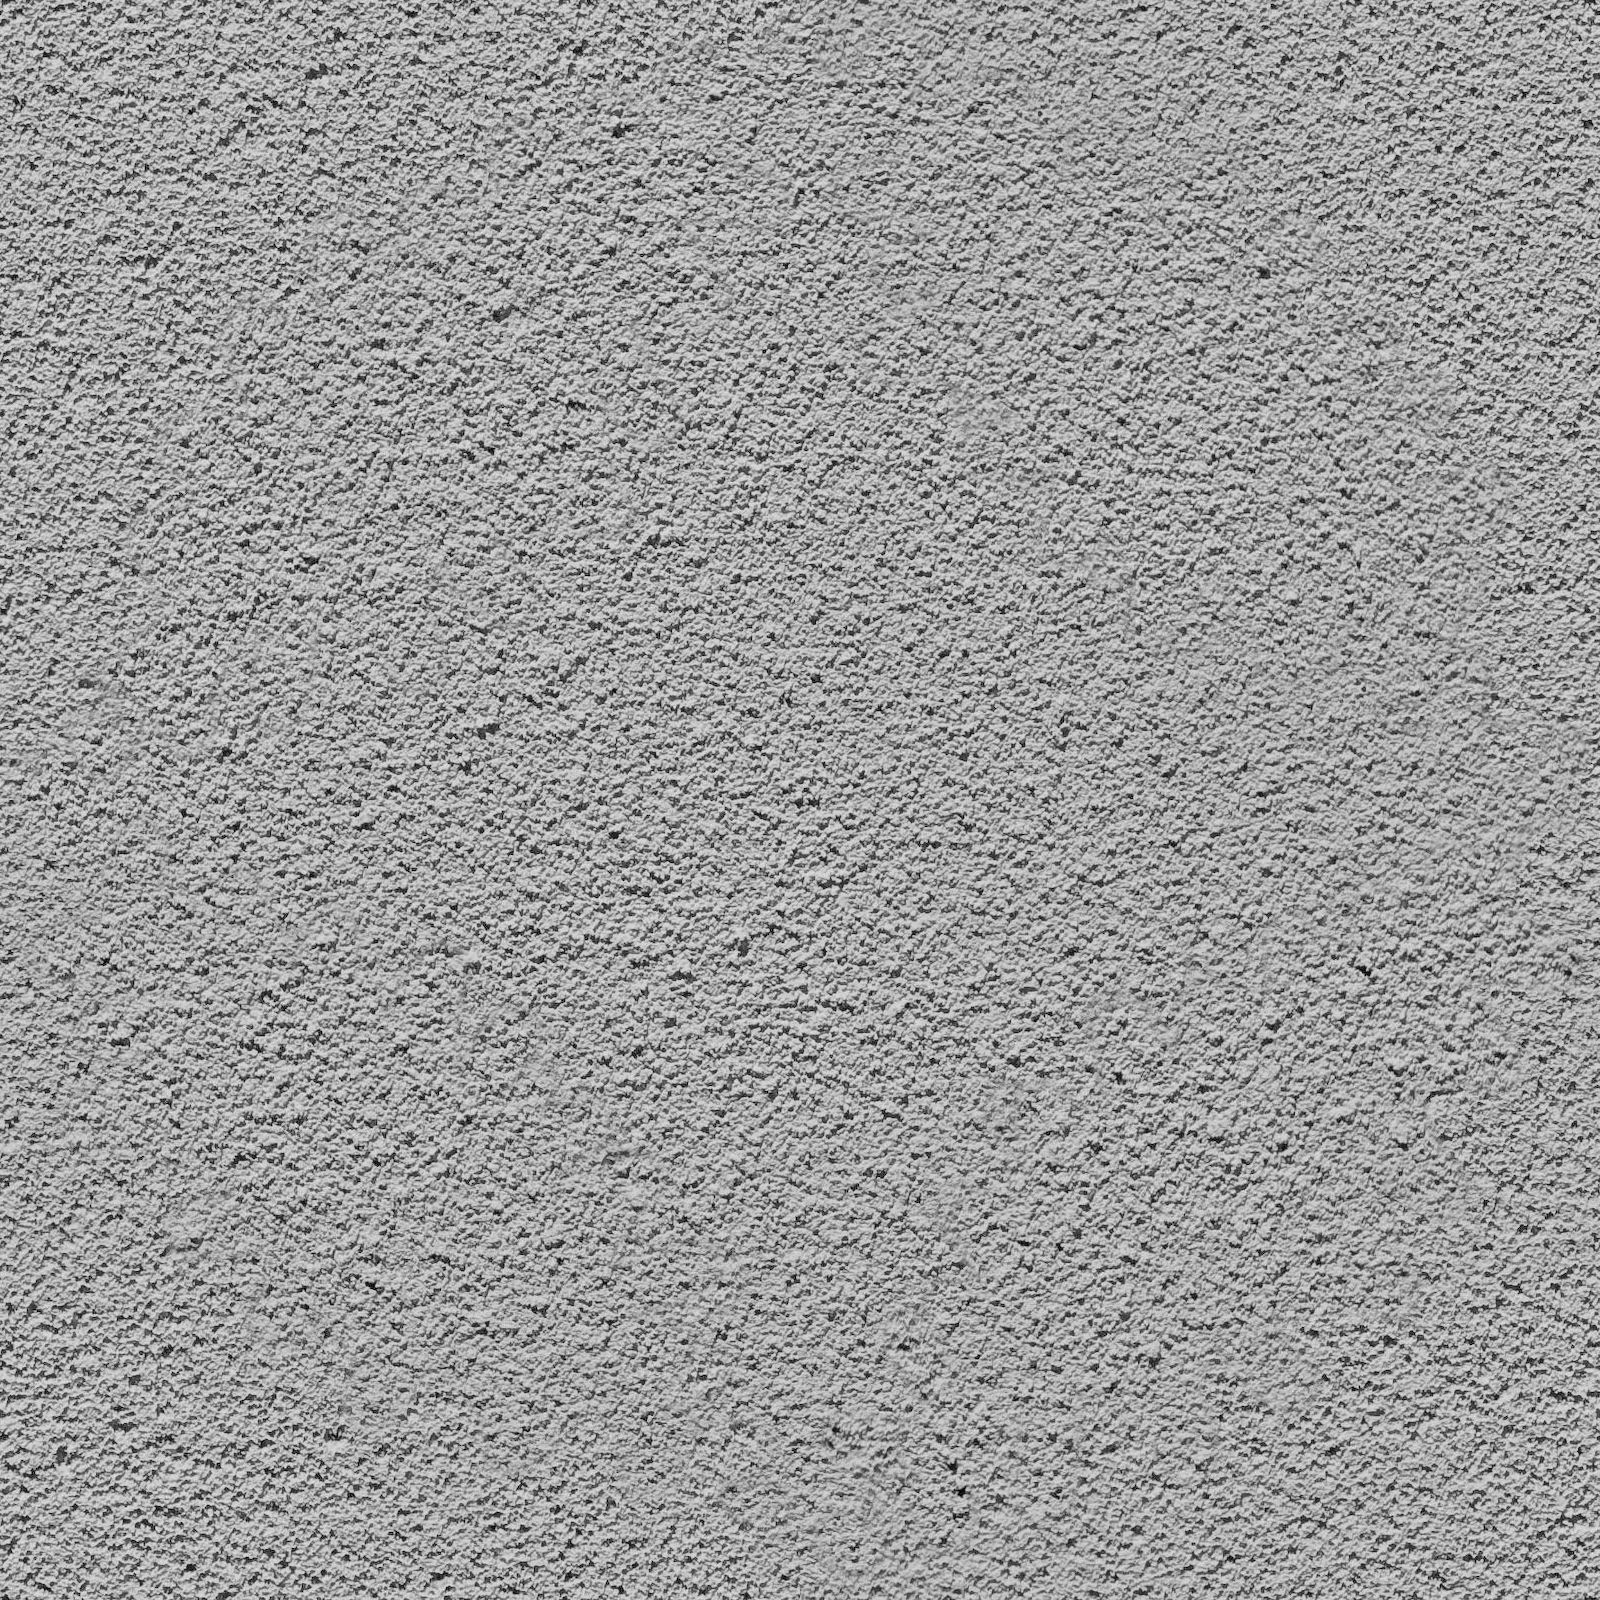 High Resolution Seamless Textures: Tileable Stucco Wall Texture #14